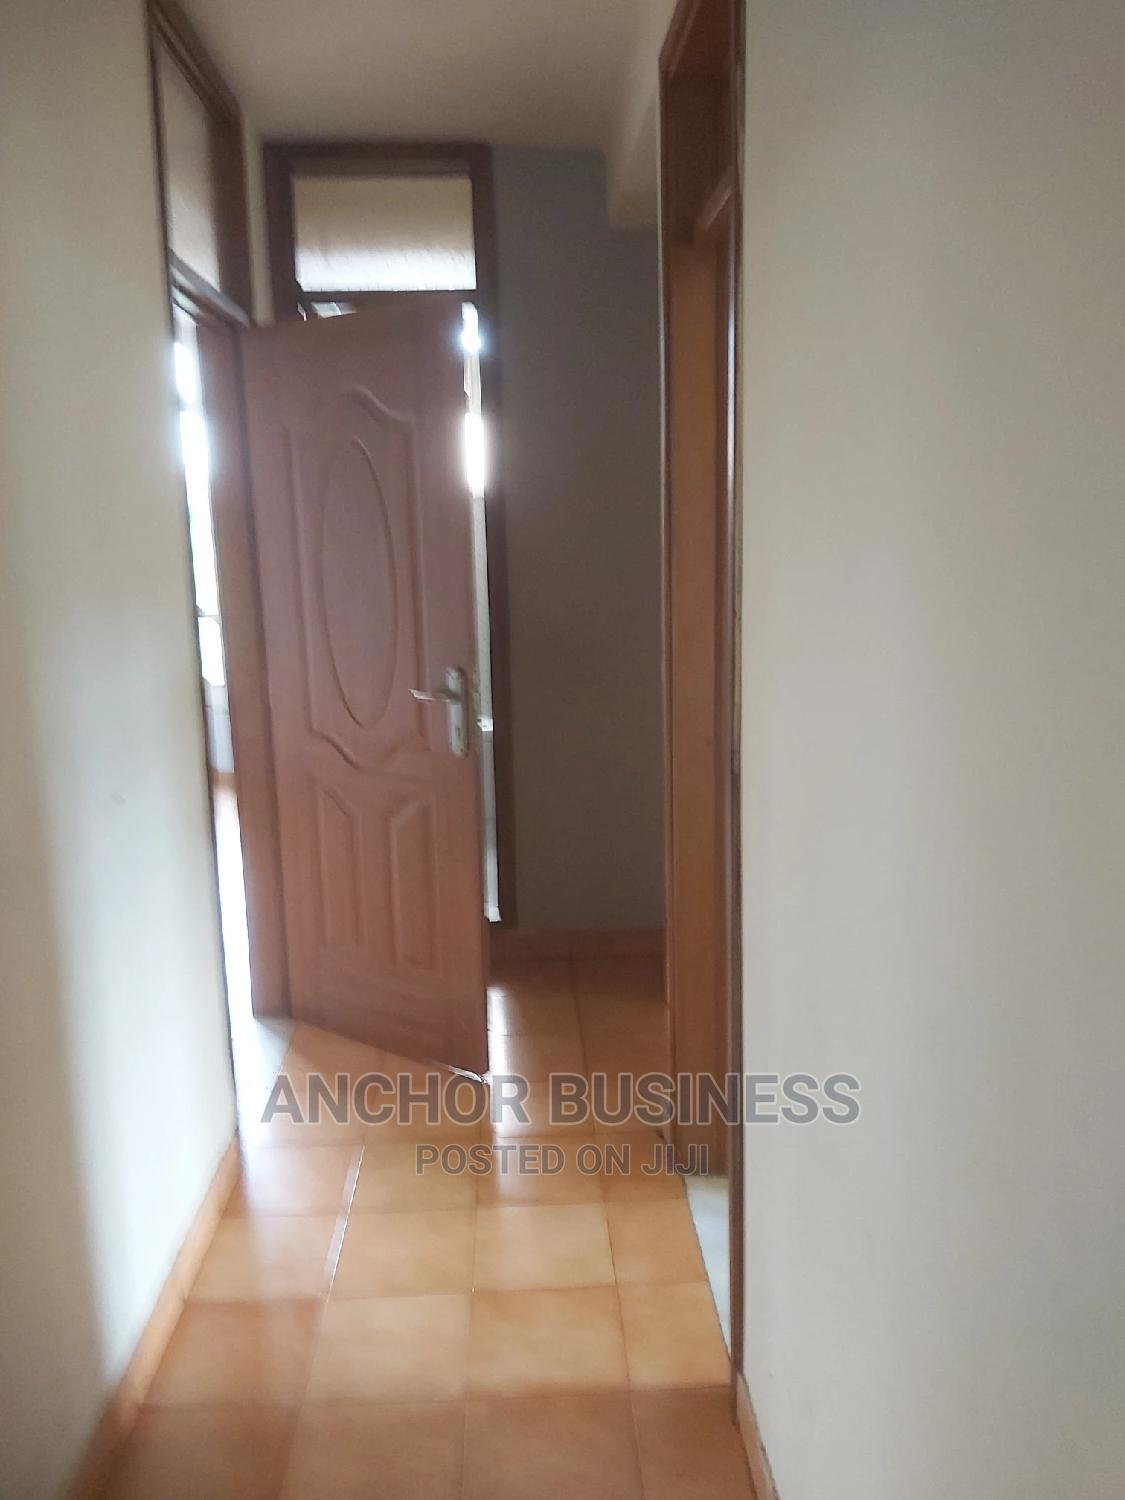 3bdrm Apartment in Anchor Bussiness, Bole for Rent